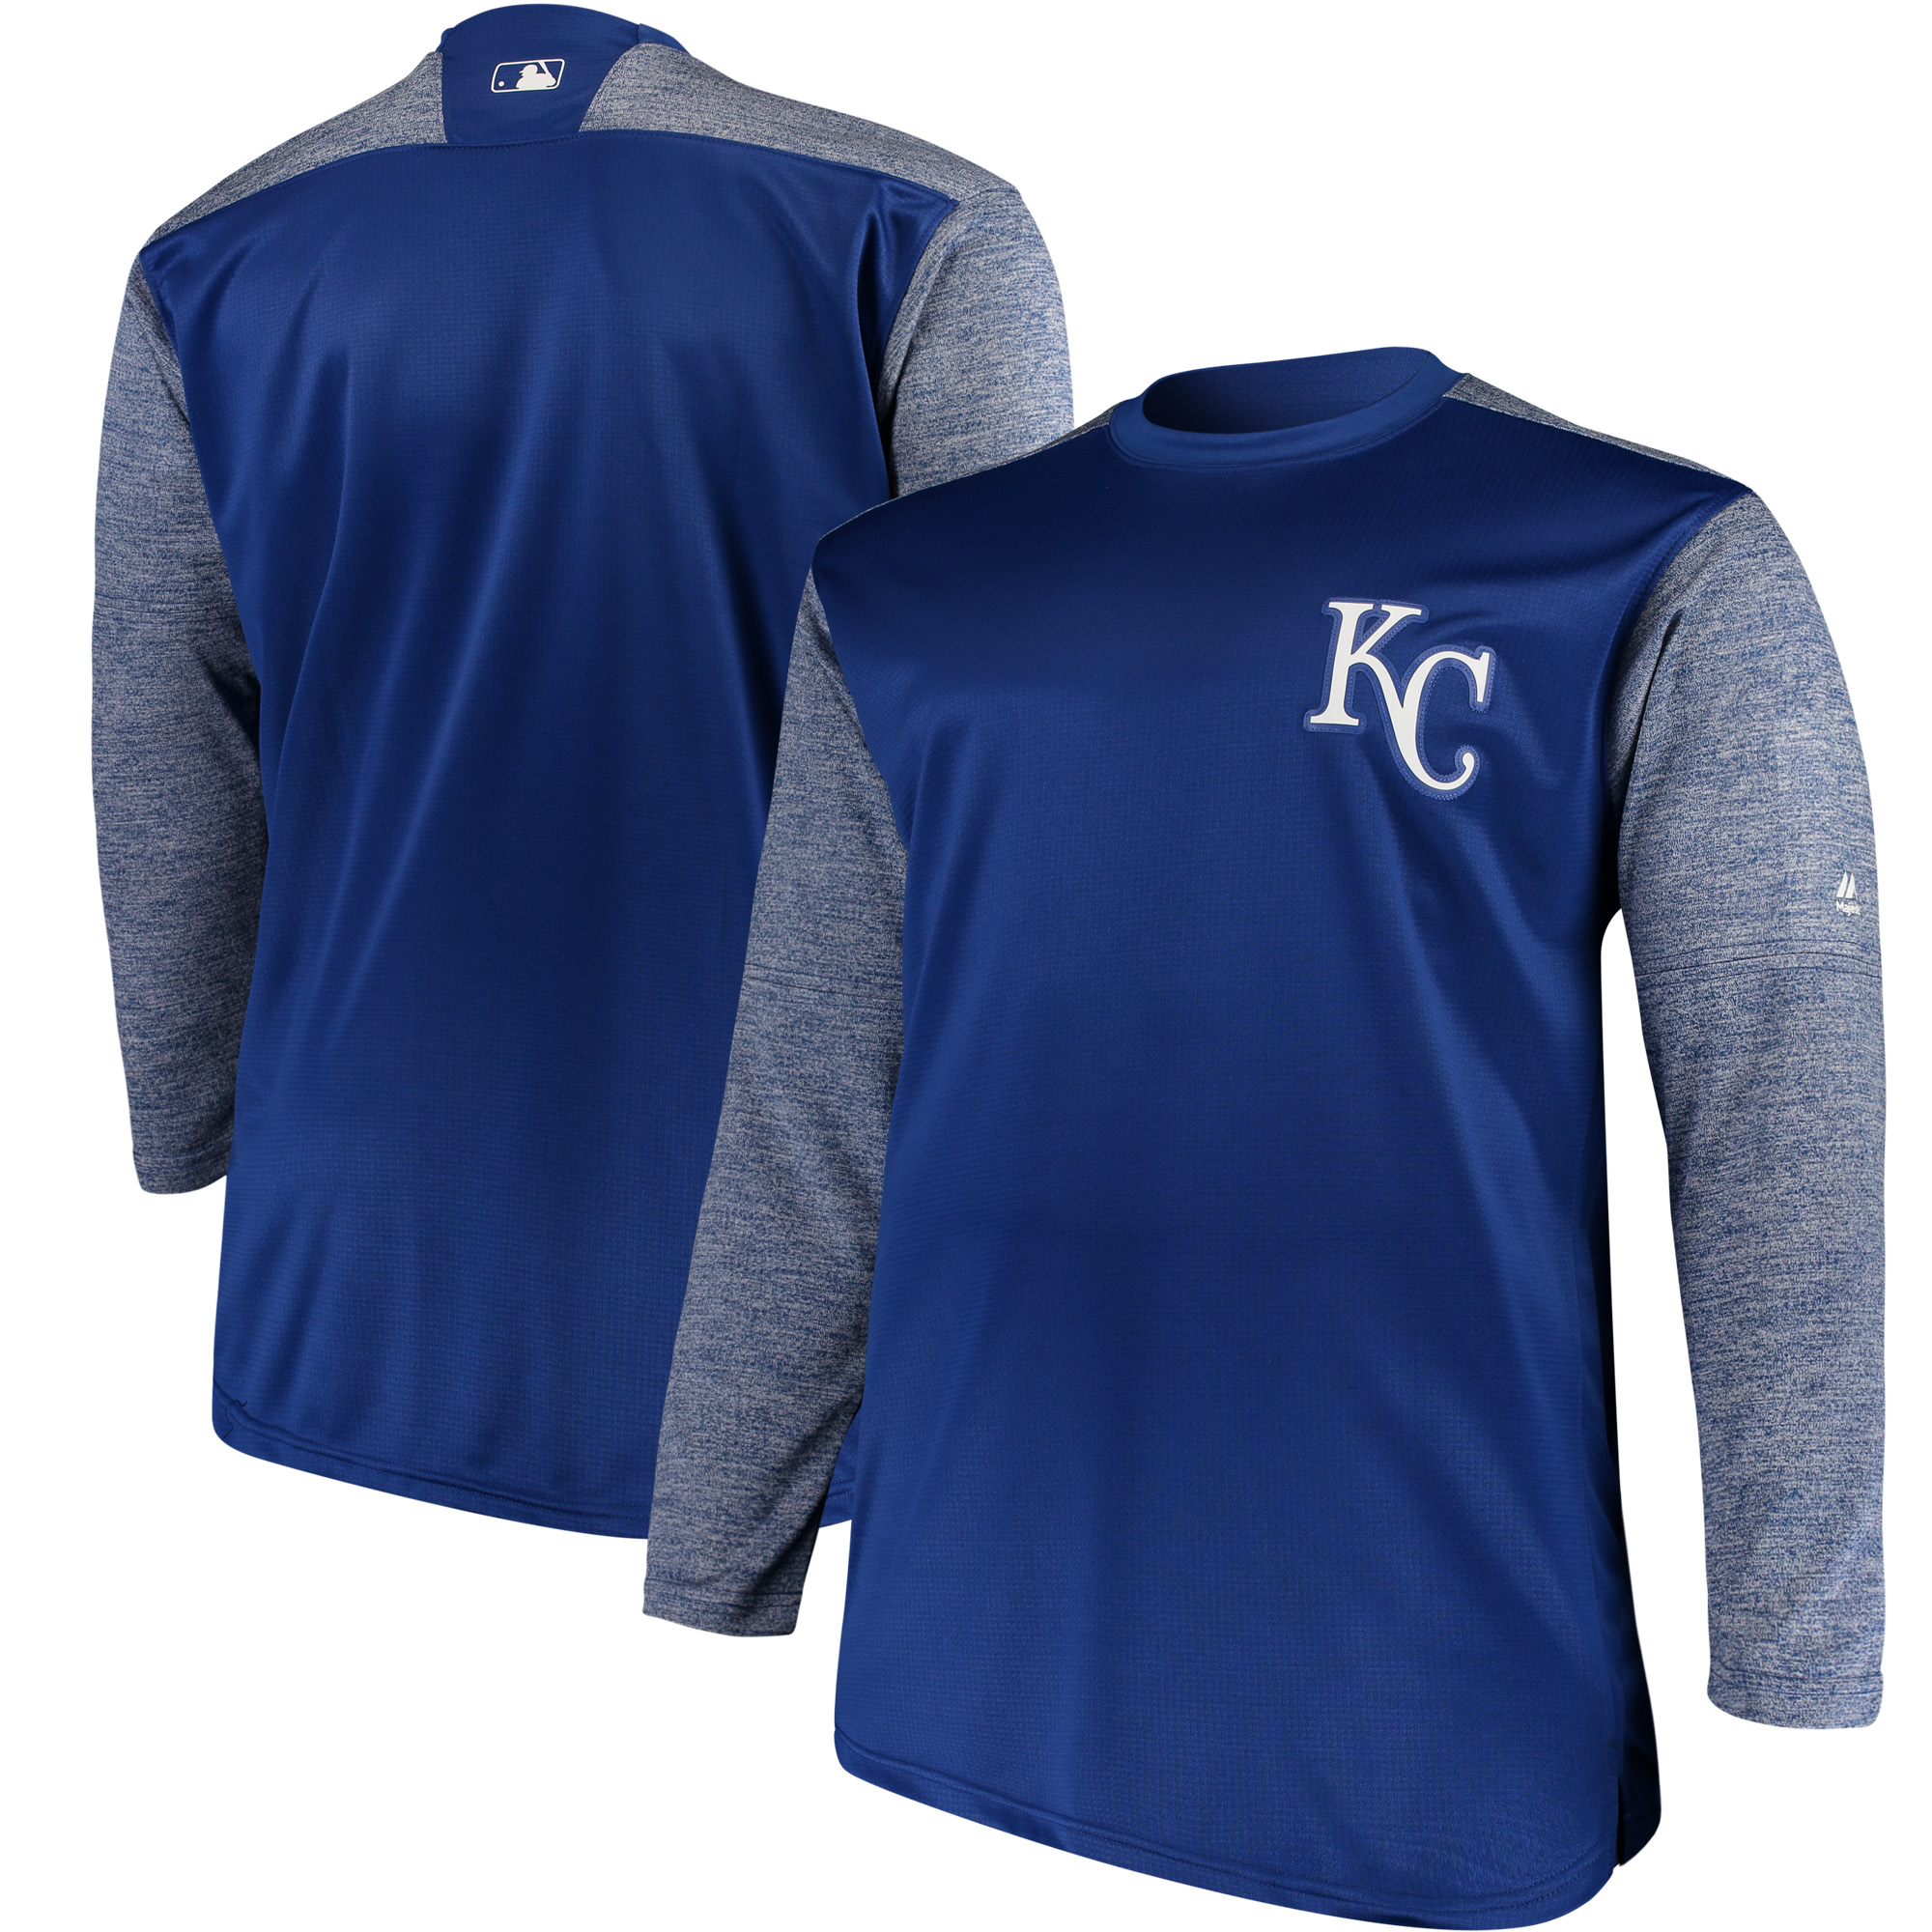 Kansas City Royals Majestic Big & Tall On-Field Tech Fleece Sweatshirt - Royal/Gray